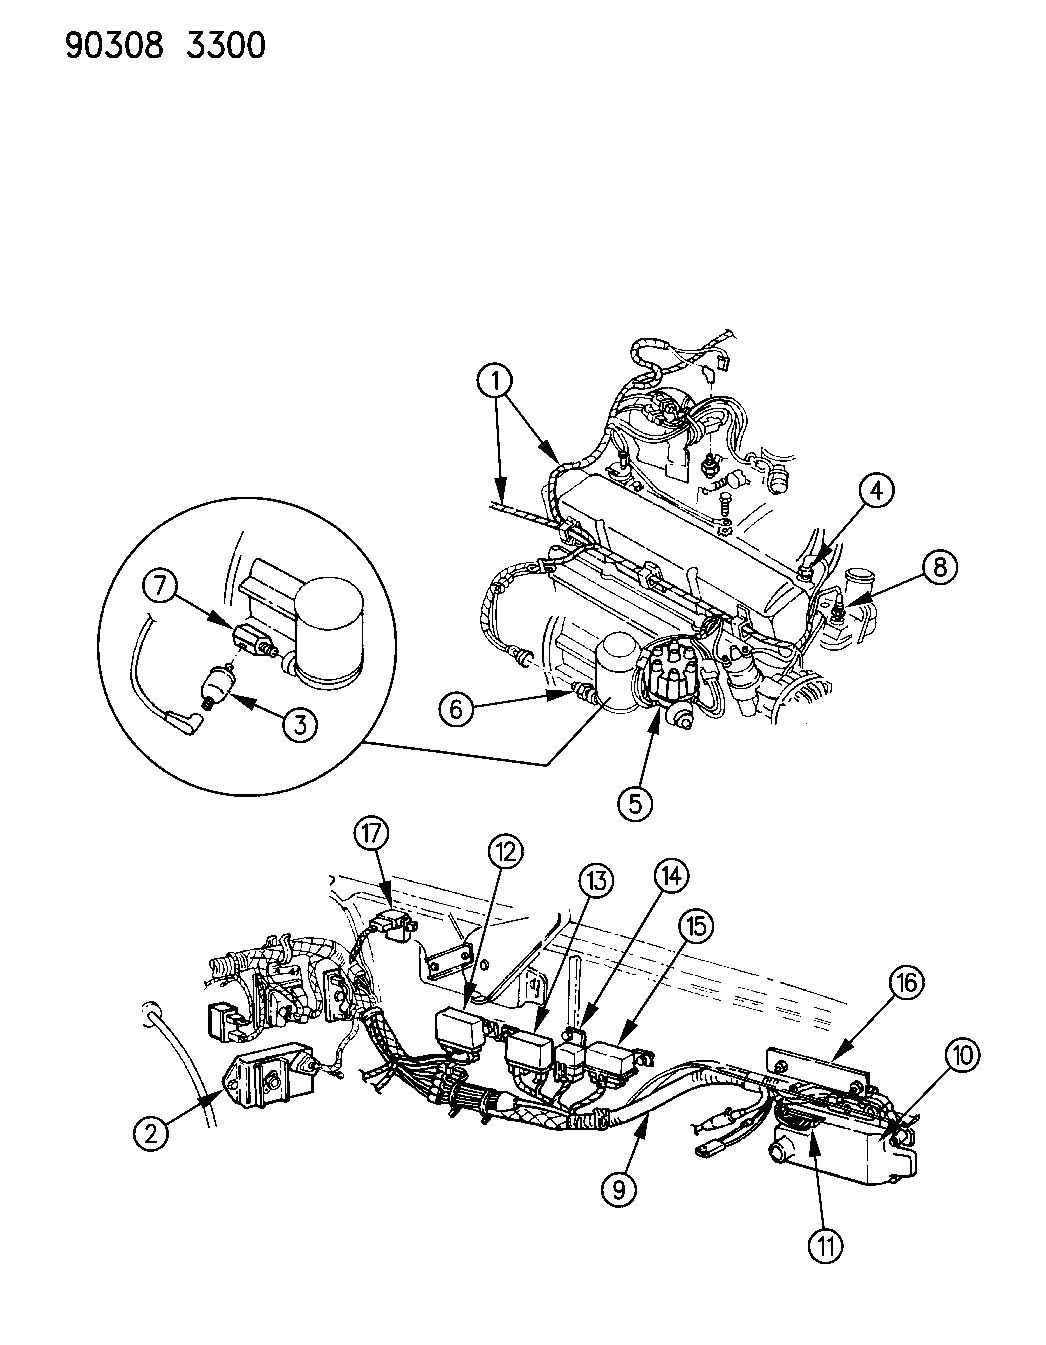 92 Chrysler Lebaron Engine Diagram, 92, Free Engine Image